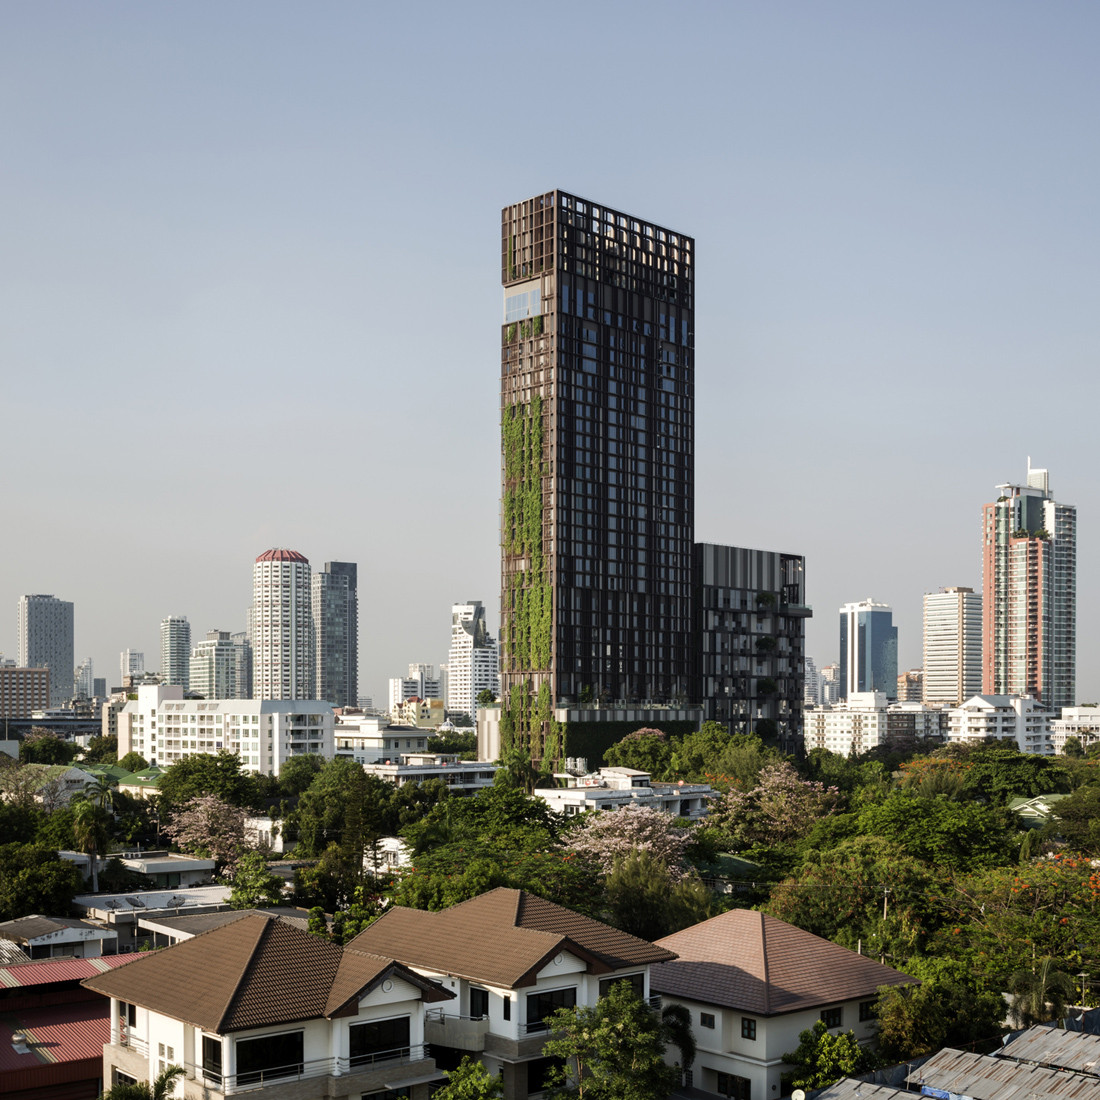 Gallery of ideo morph 38 somdoon architects 6 for Bangkok architecture